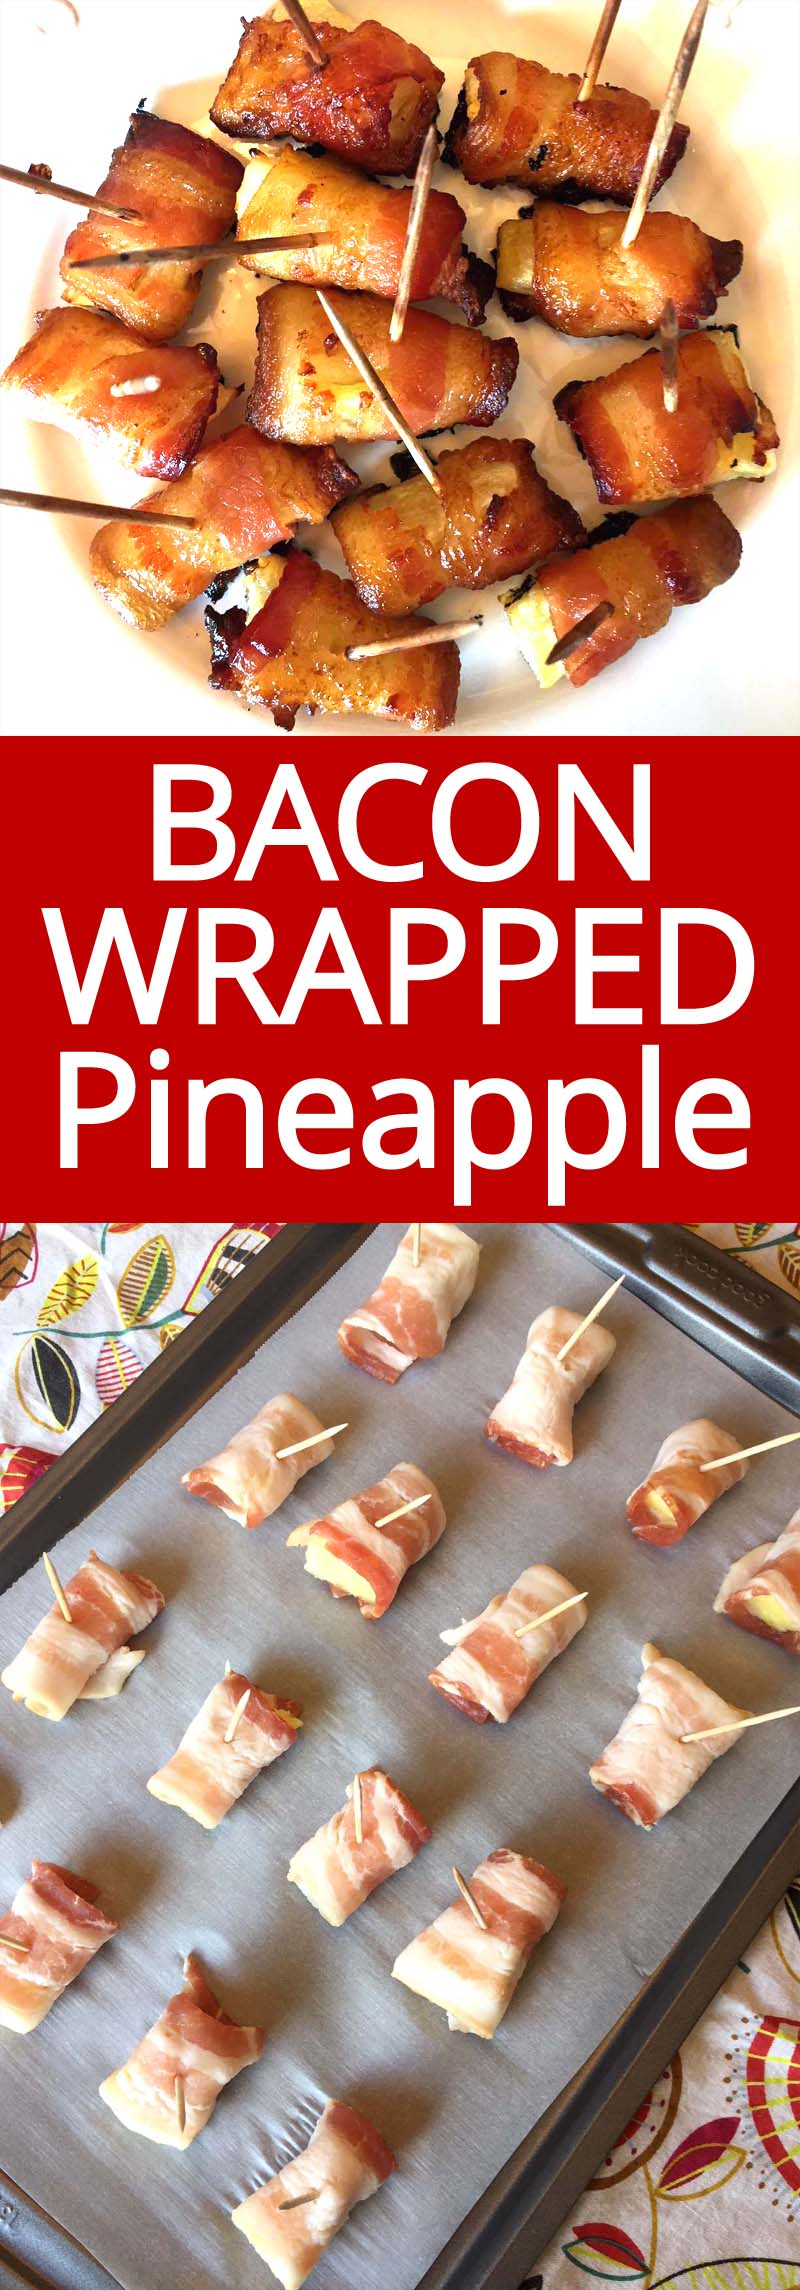 I love these bacon wrapped pineapple bites!  They taste mouthwatering! This is my go-to party appetizer!